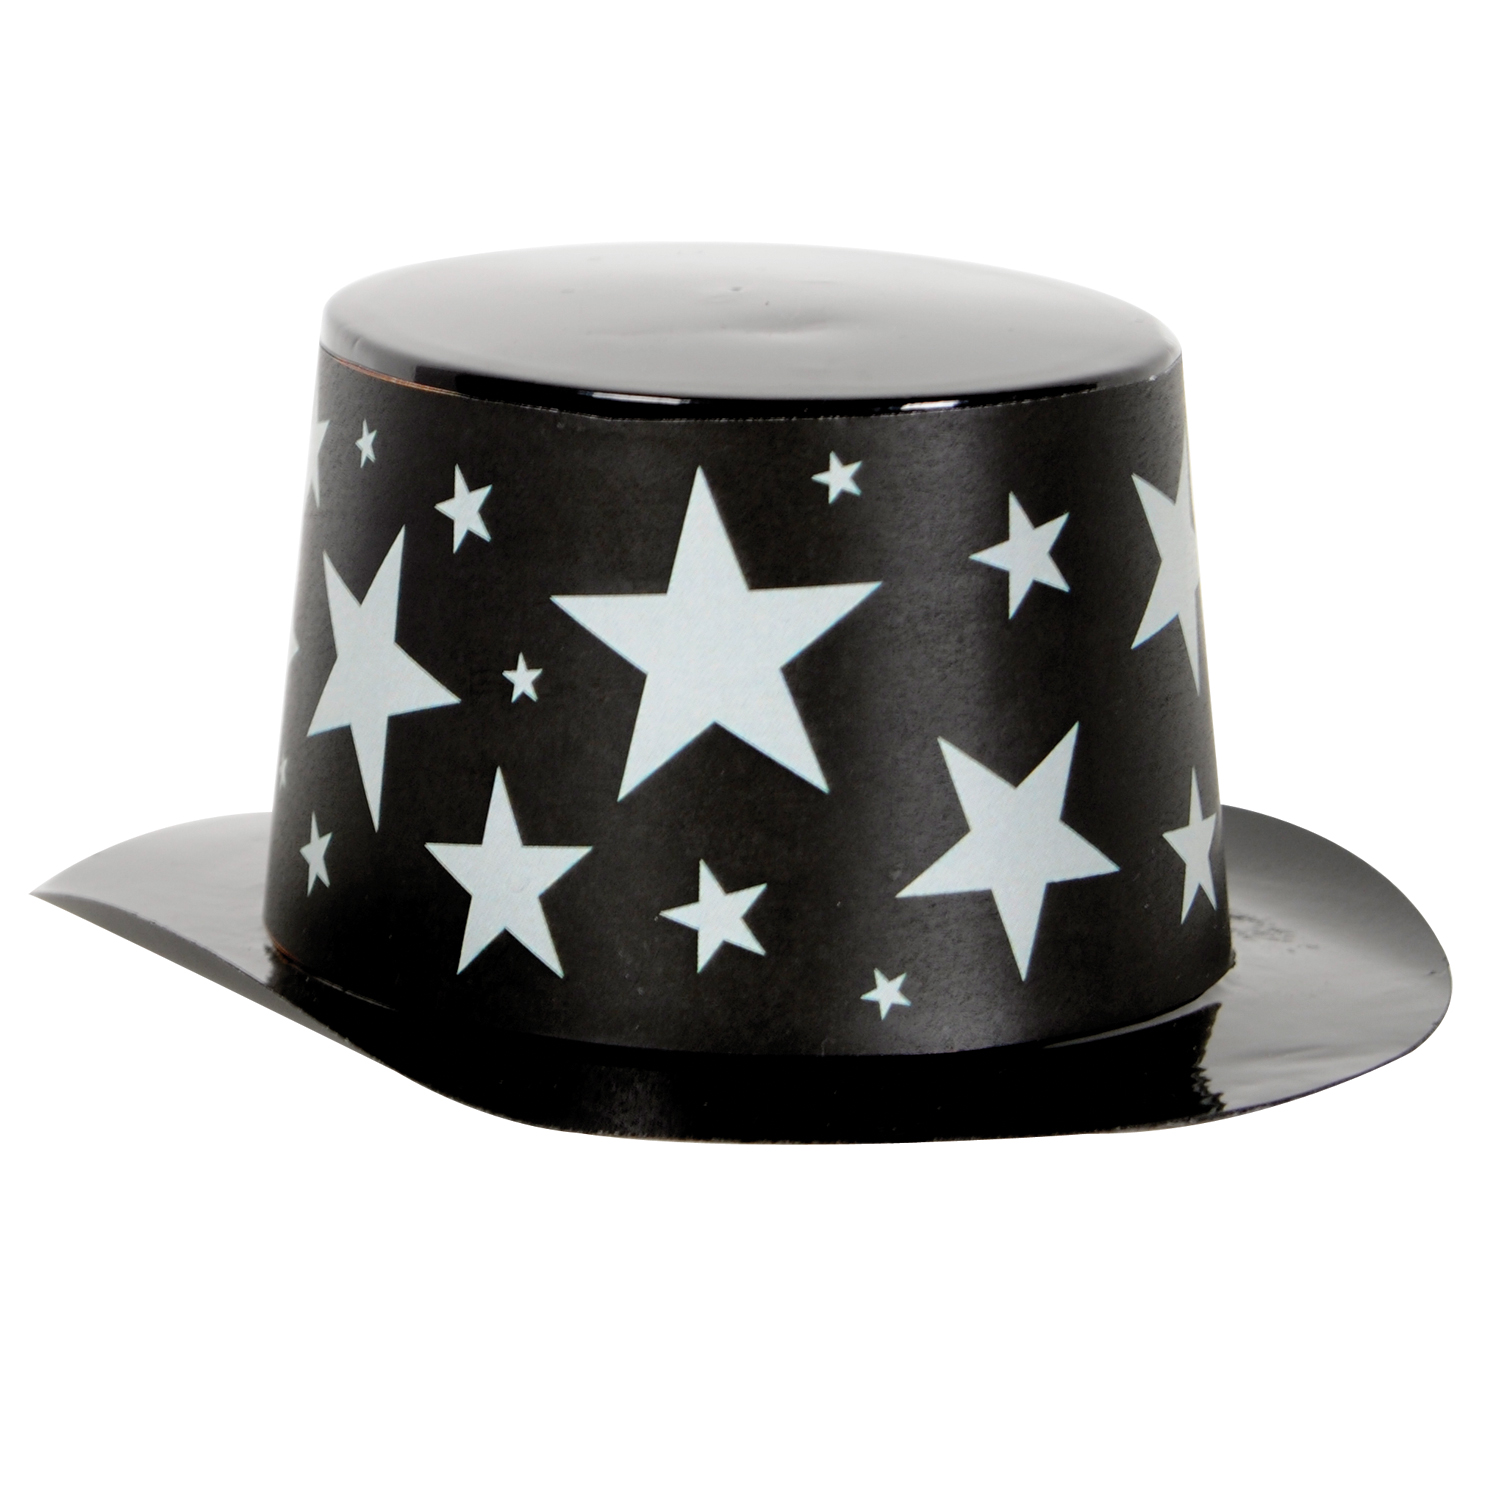 Mini Black Plastic Topper Star Band 4.75x2in black & silver